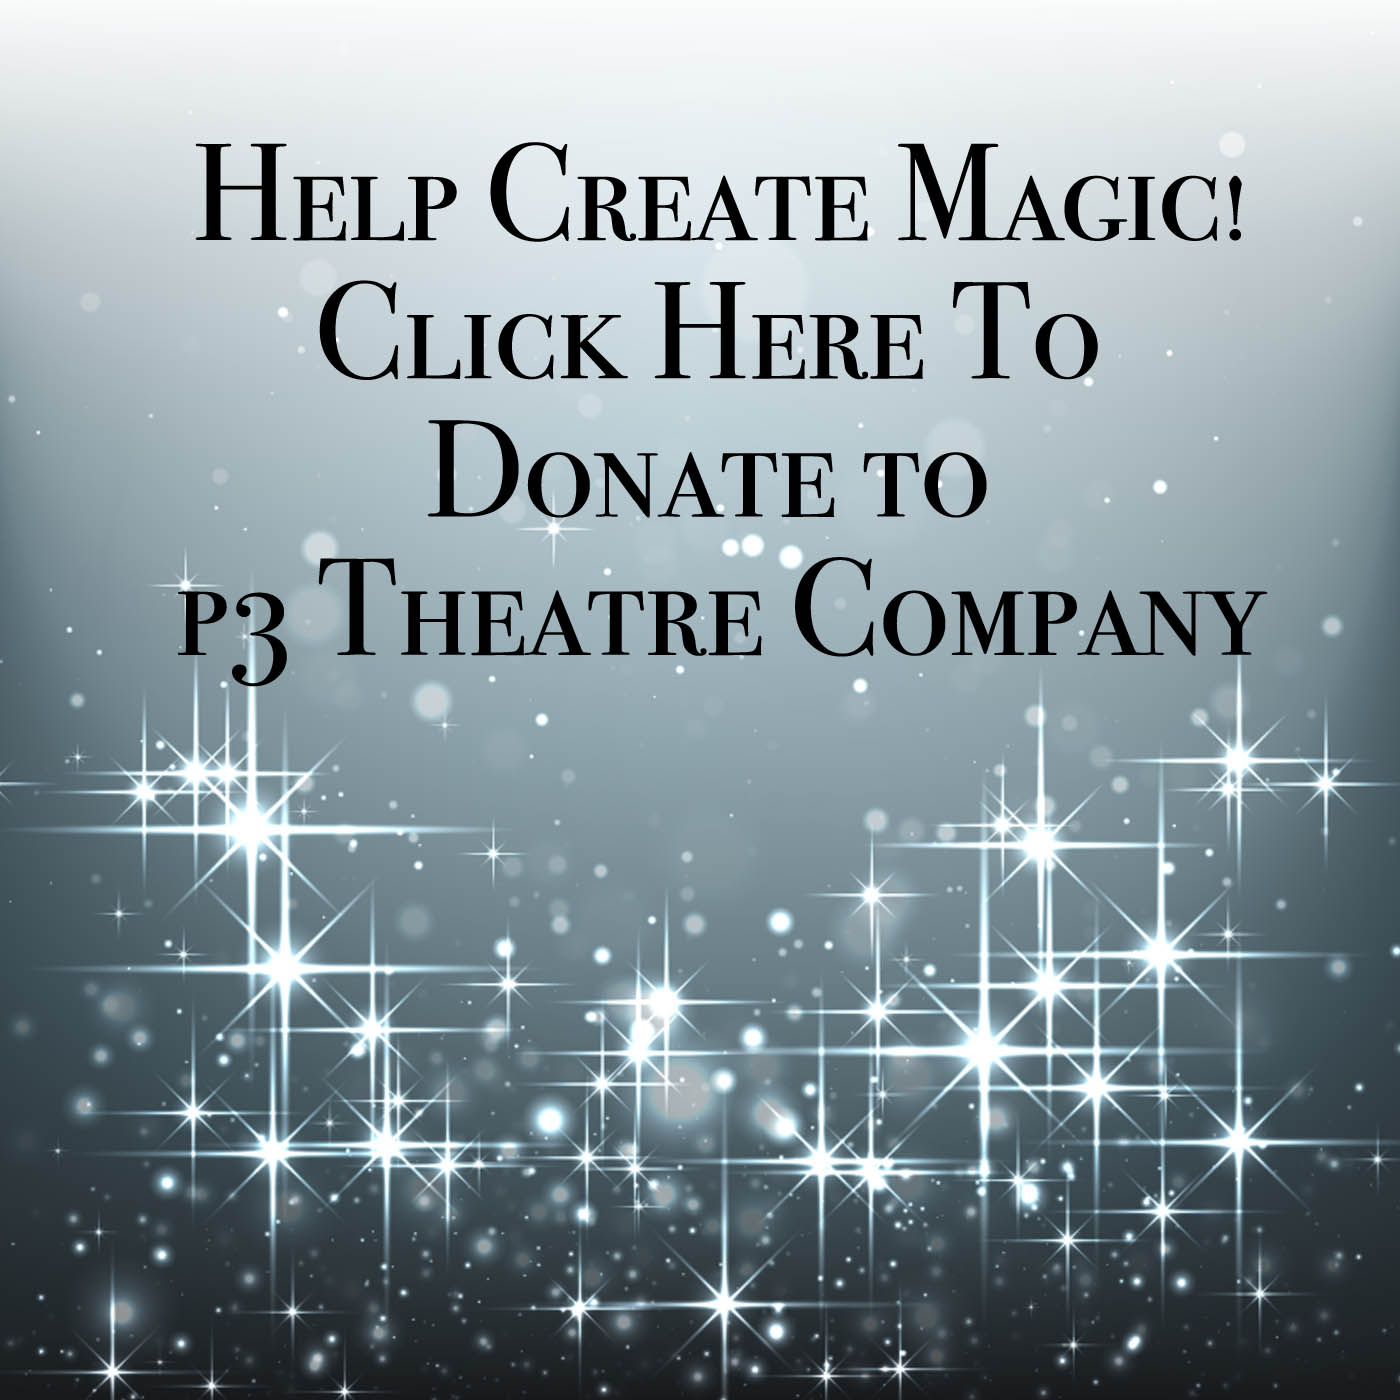 Donate to P3 Theatre Company